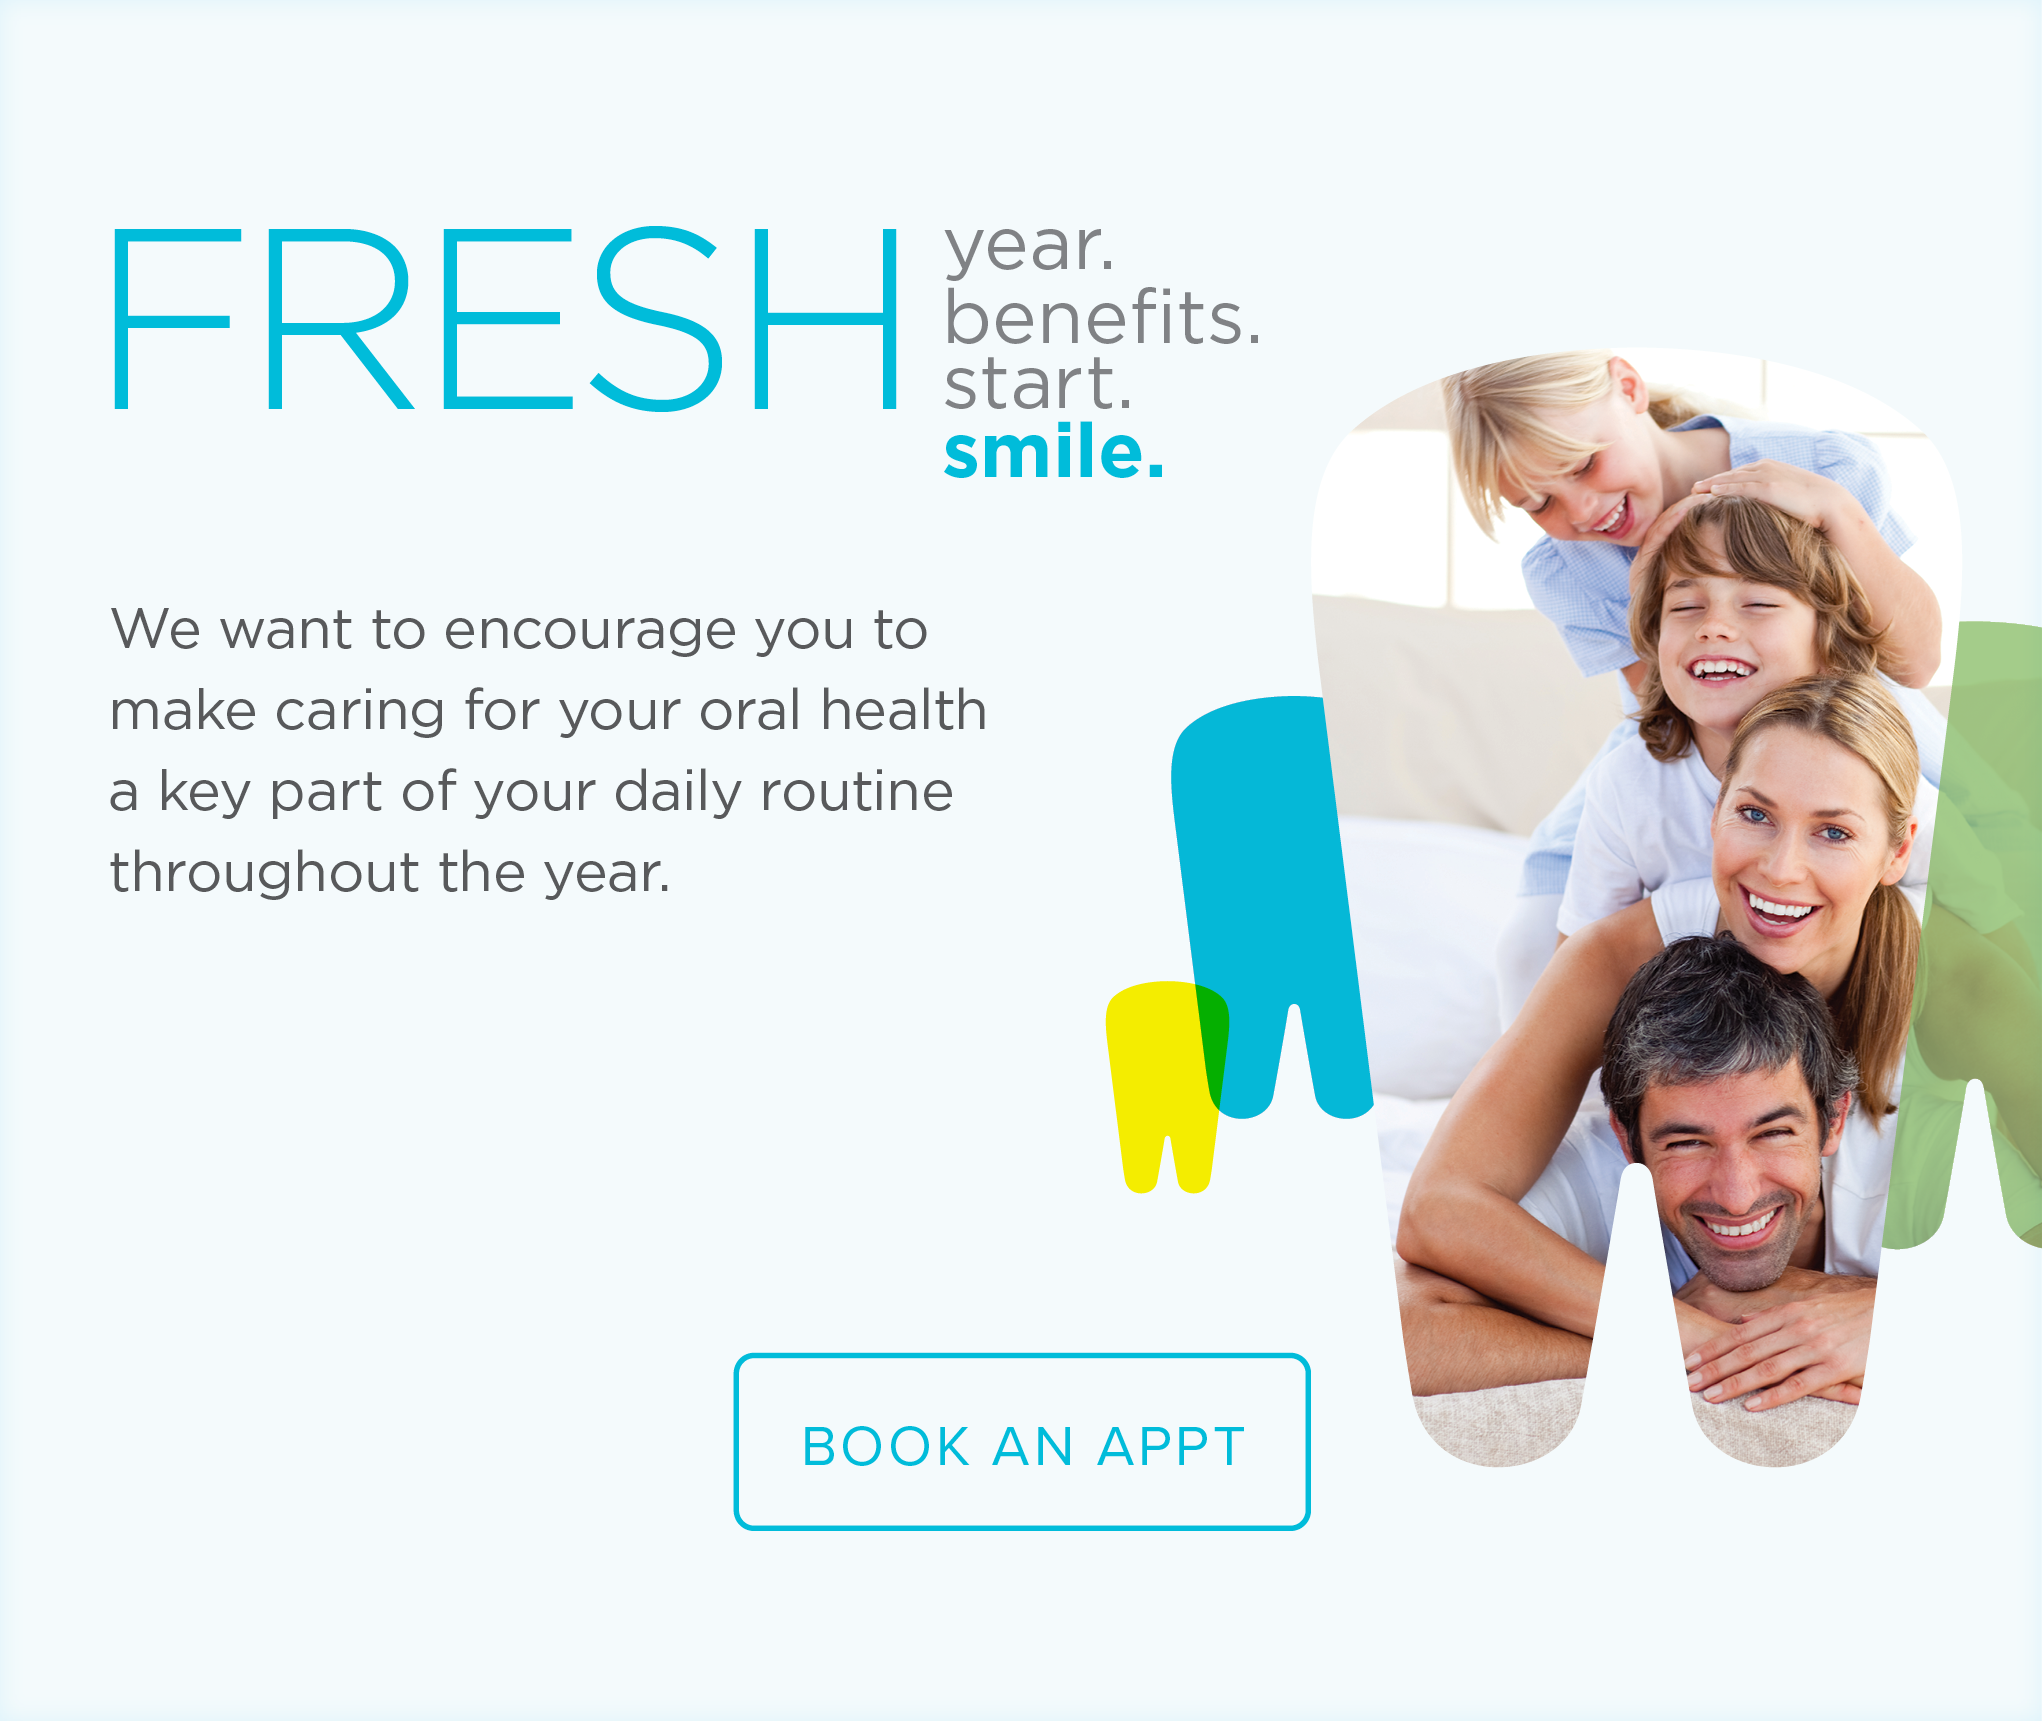 Nona  Dentists - Make the Most of Your Benefits